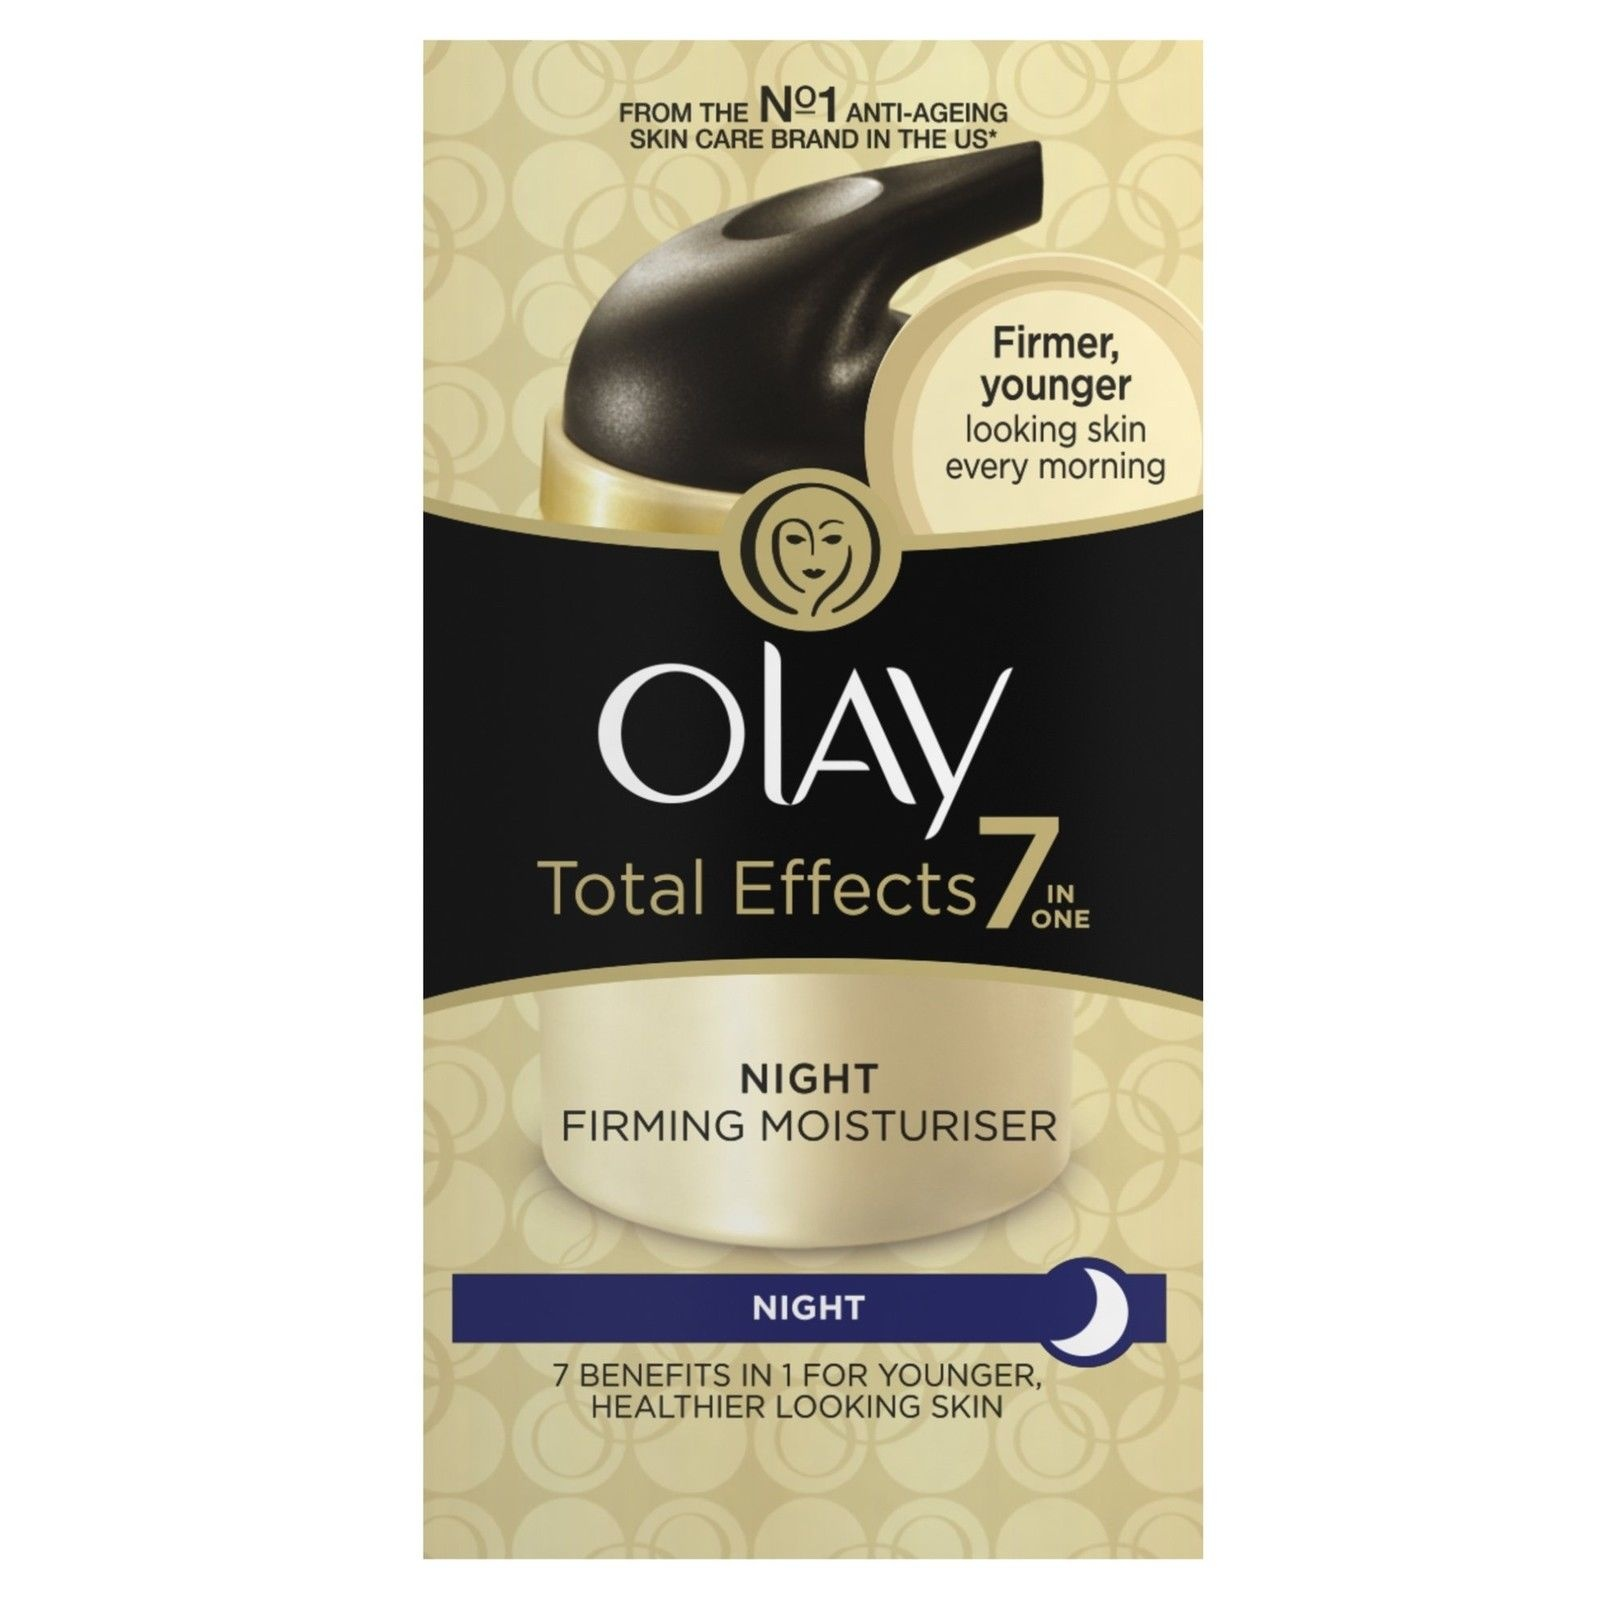 Olay Total Effects 7 Beauty Buy Online From In One Anti Ageing Night Cream 50gr